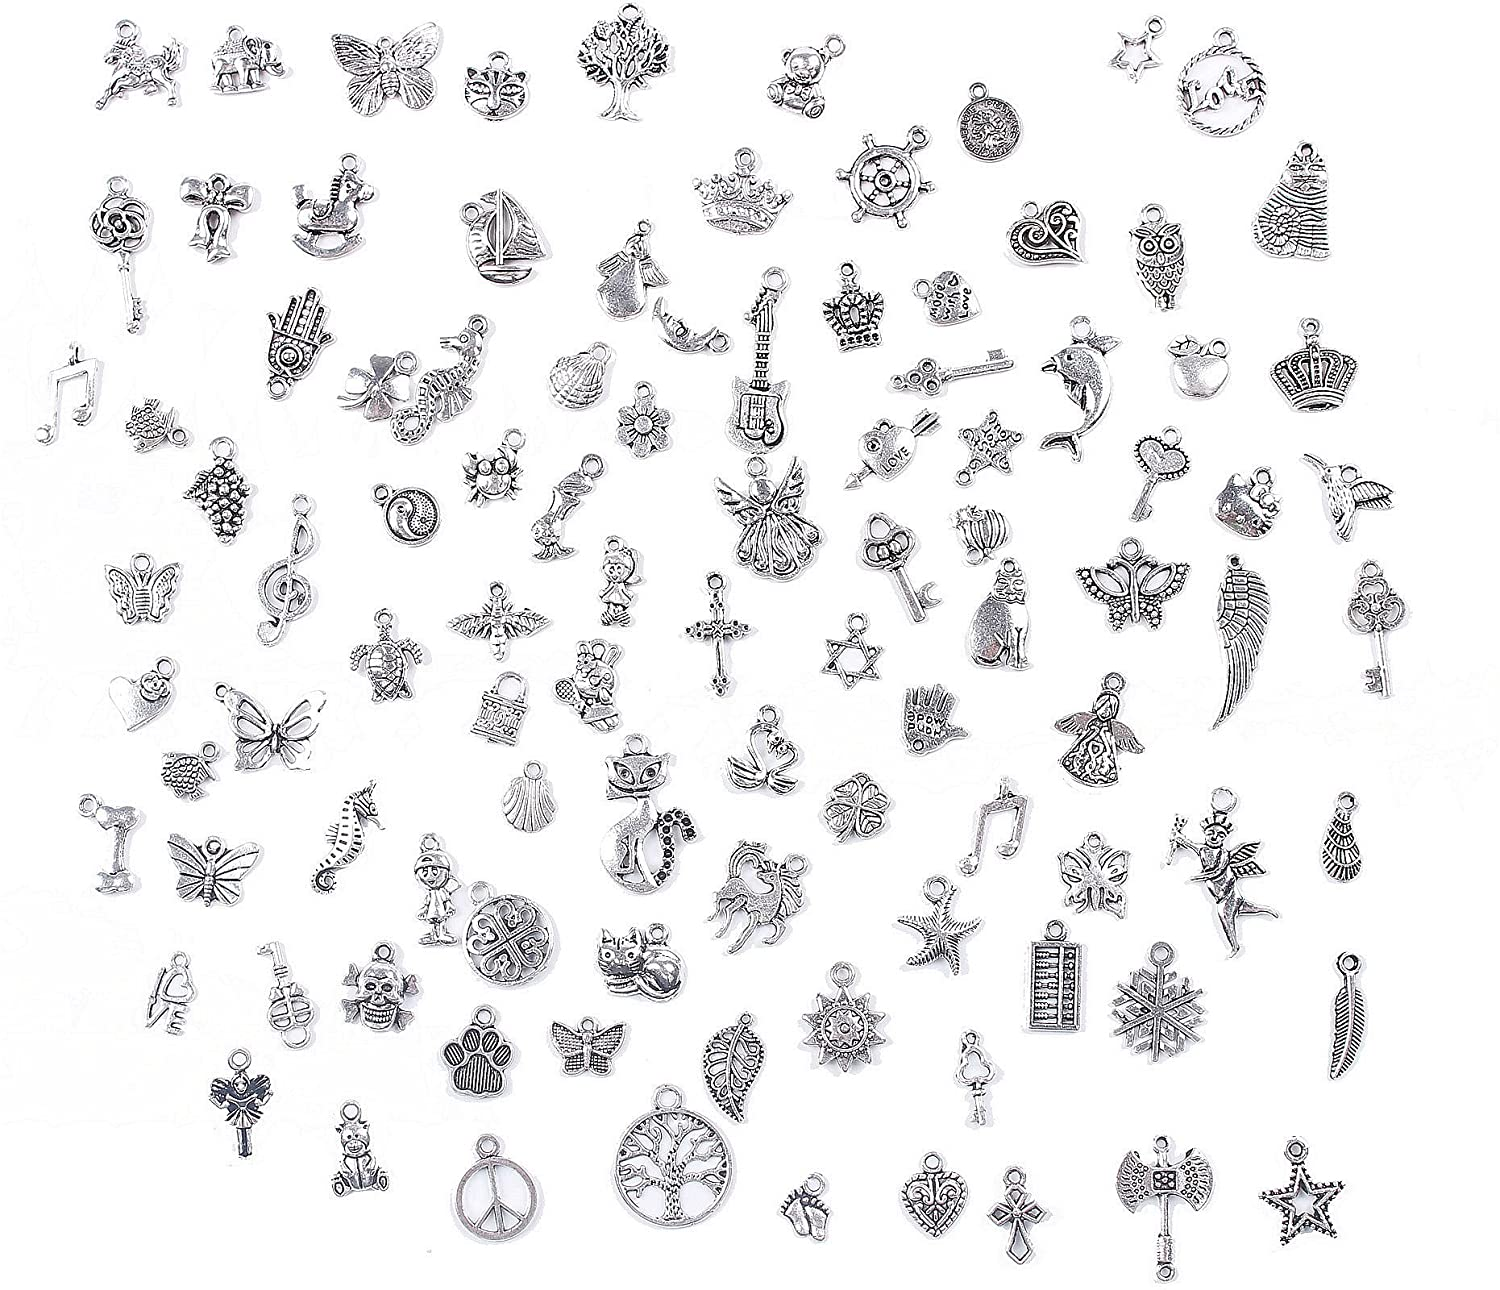 BIHRTC Pack of 100 Antique Silver Mixed Charms Pendants DIY Handmade Accessories for Crafting,Bracelet Necklace Jewelry Findings Jewelry Making Accessory LTD